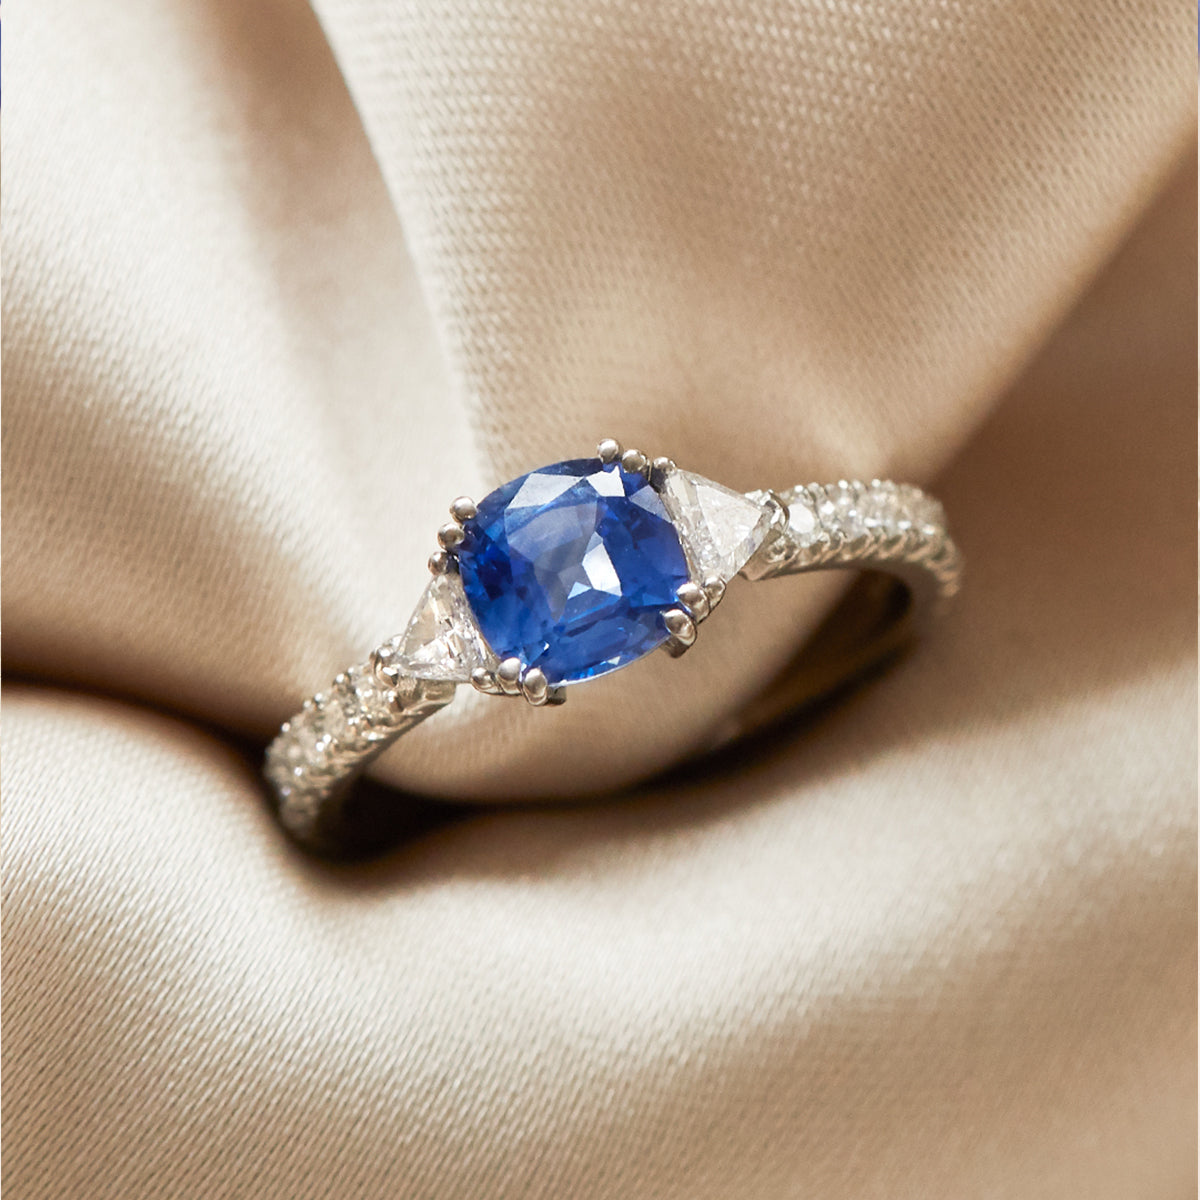 Cushion Cut Blue Sapphire Trilogy Engagement Ring from Fenton in Platinum